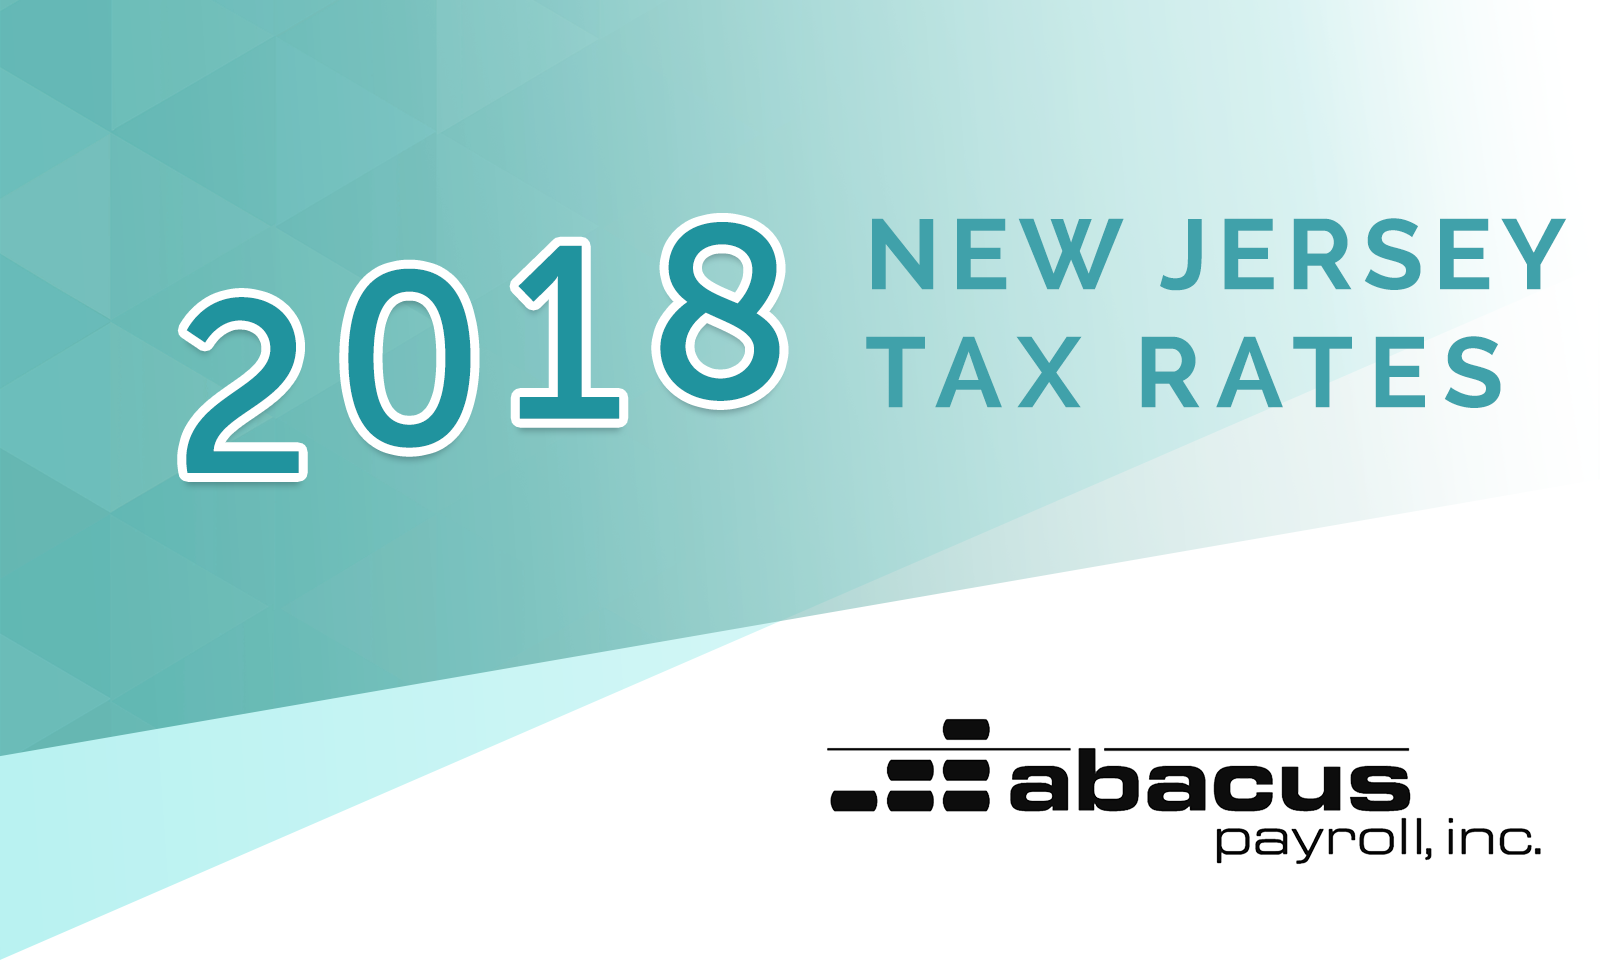 2018 New Jersey Payroll Tax Rates - Abacus Payroll